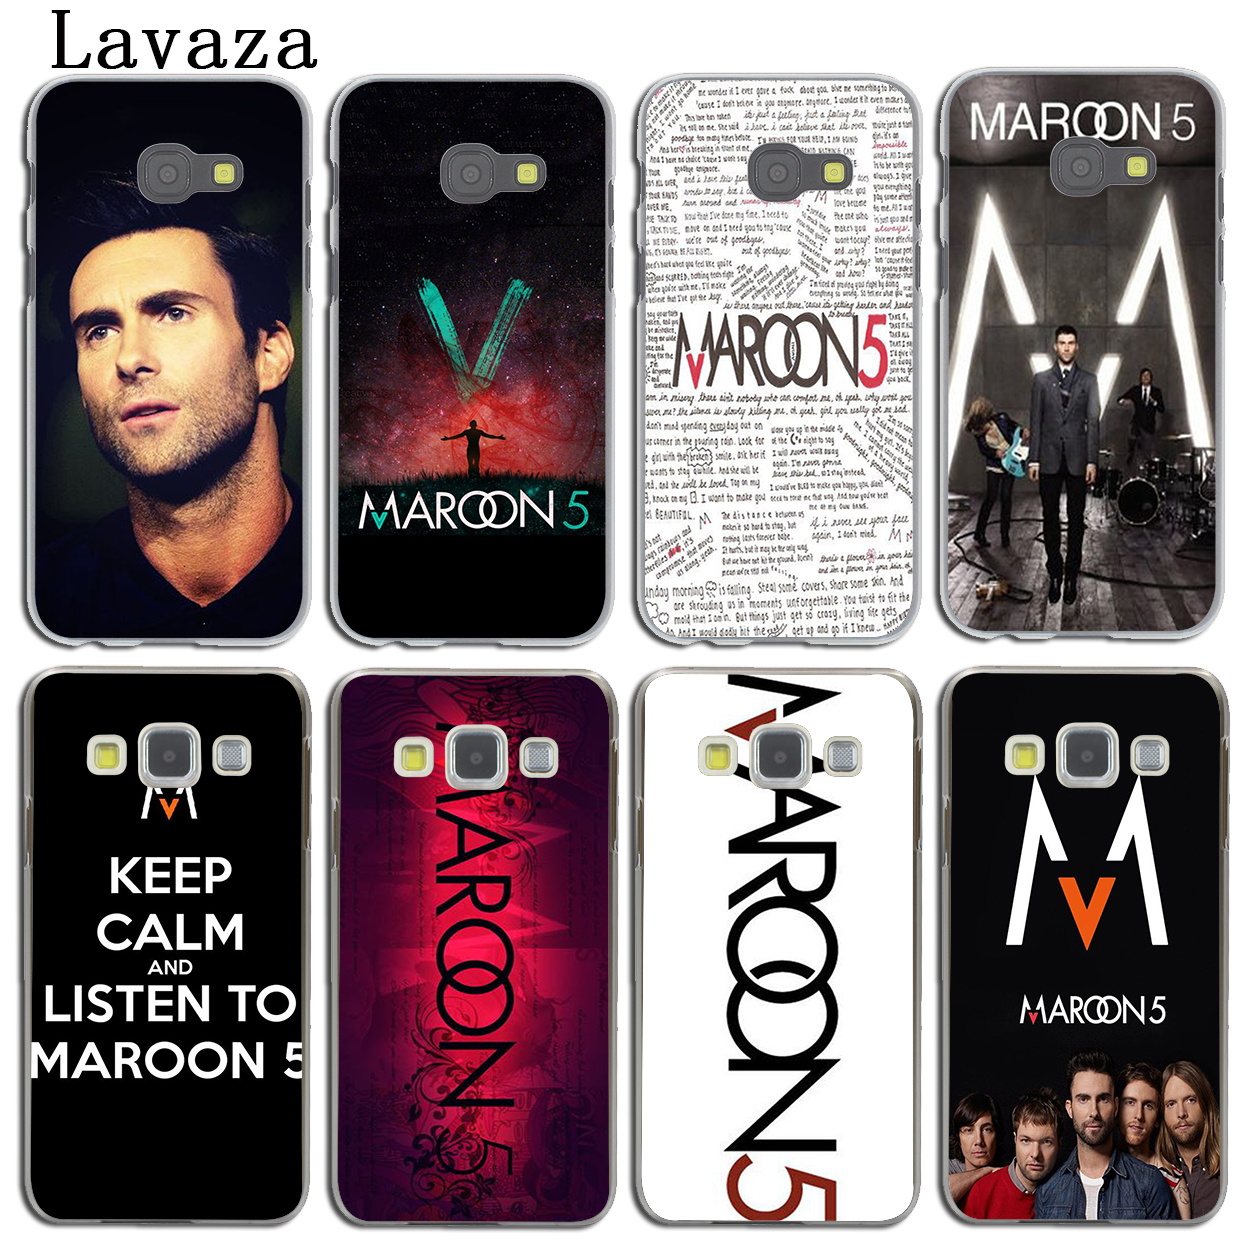 Lavaza maroon 5 Phone Cover Case for Samsung Galaxy A3 A7 A8 A5 2015 2016 2017 2018 Note 8 5 4 3 Grand 2 Prime